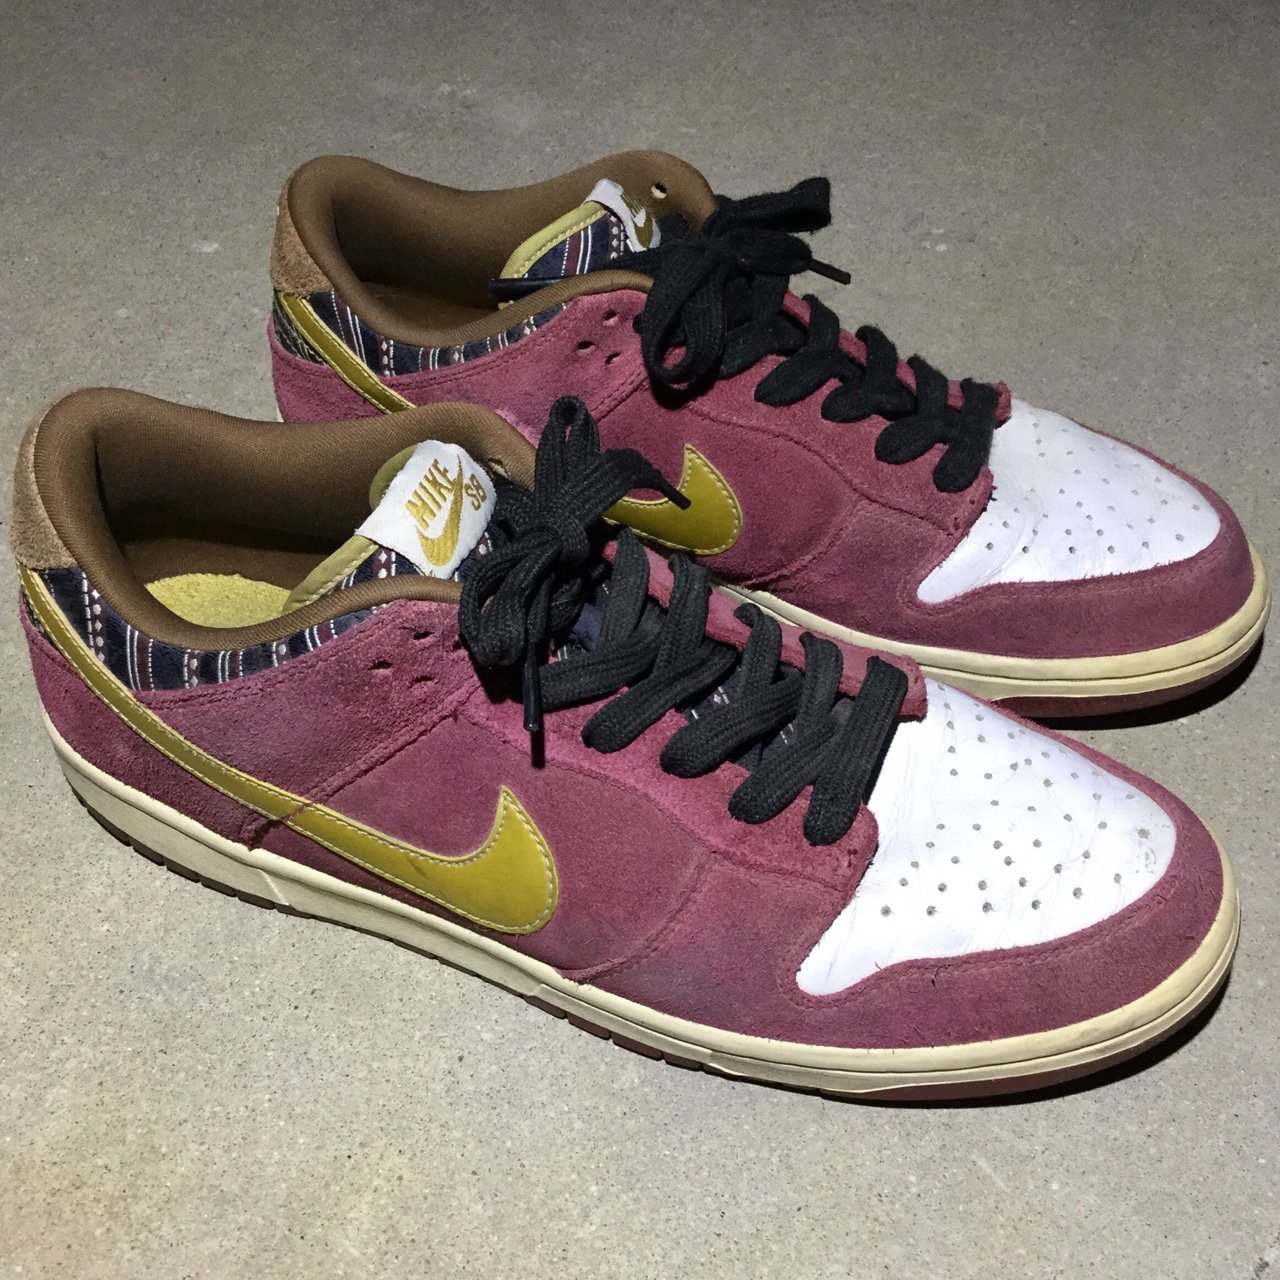 best service a29b5 2210a Nike SB Dunk Low Ron Burgundy Anchorman Shoes!!! Color isn t - Depop